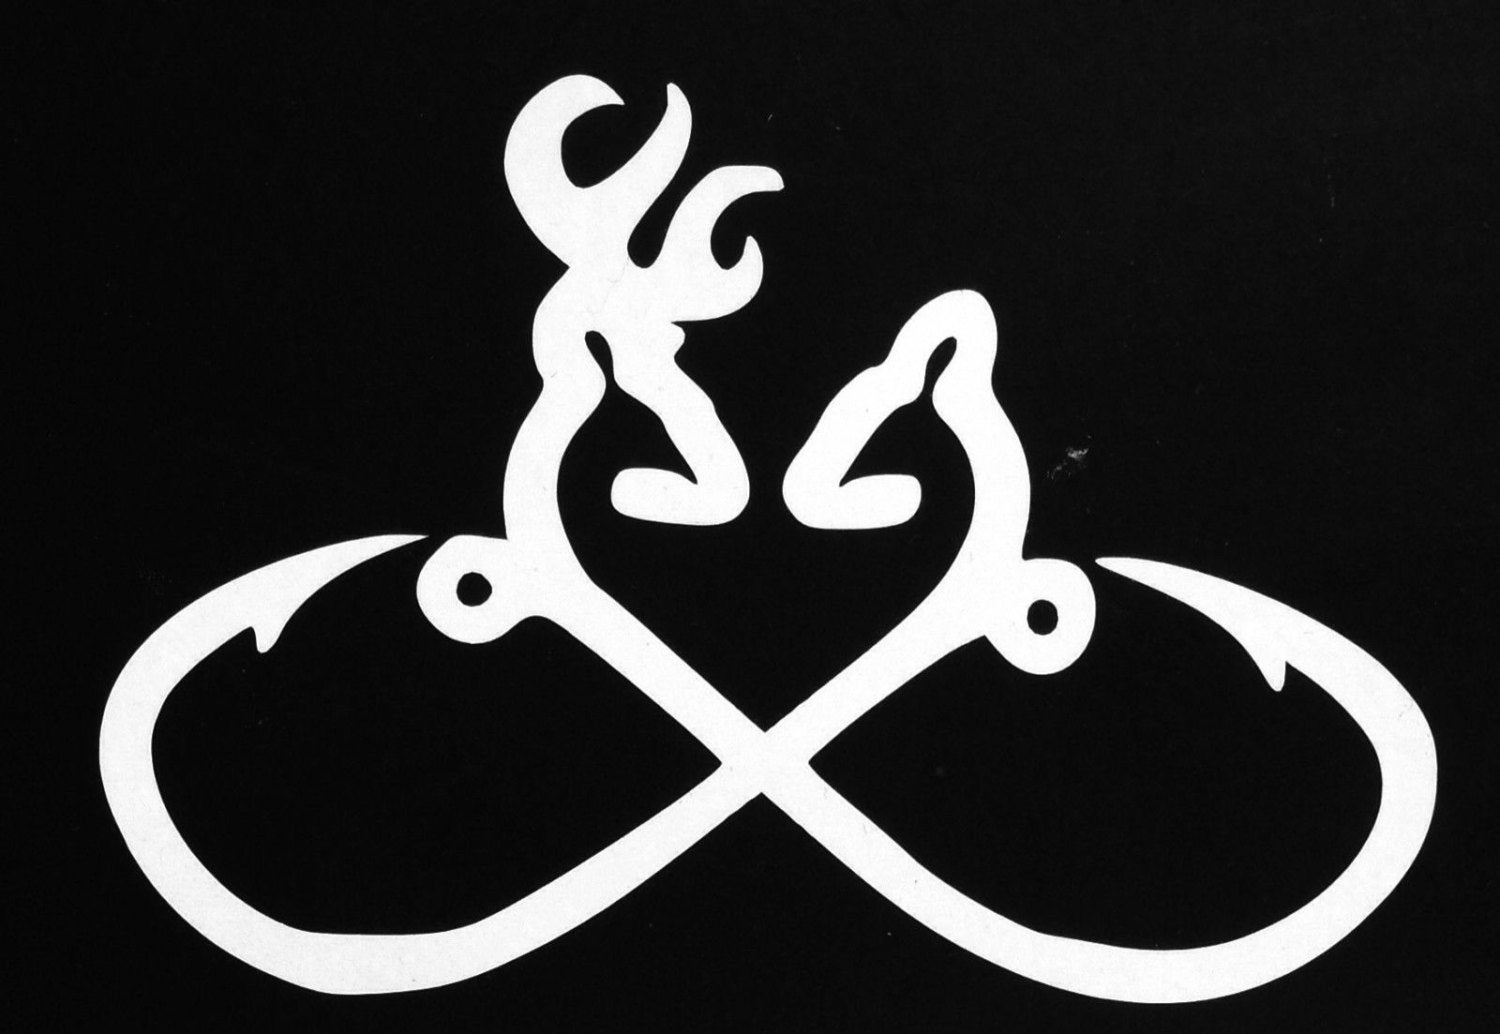 Hook Infinity Browning Heart Truck Car SUV Decal - Browning vinyl decals